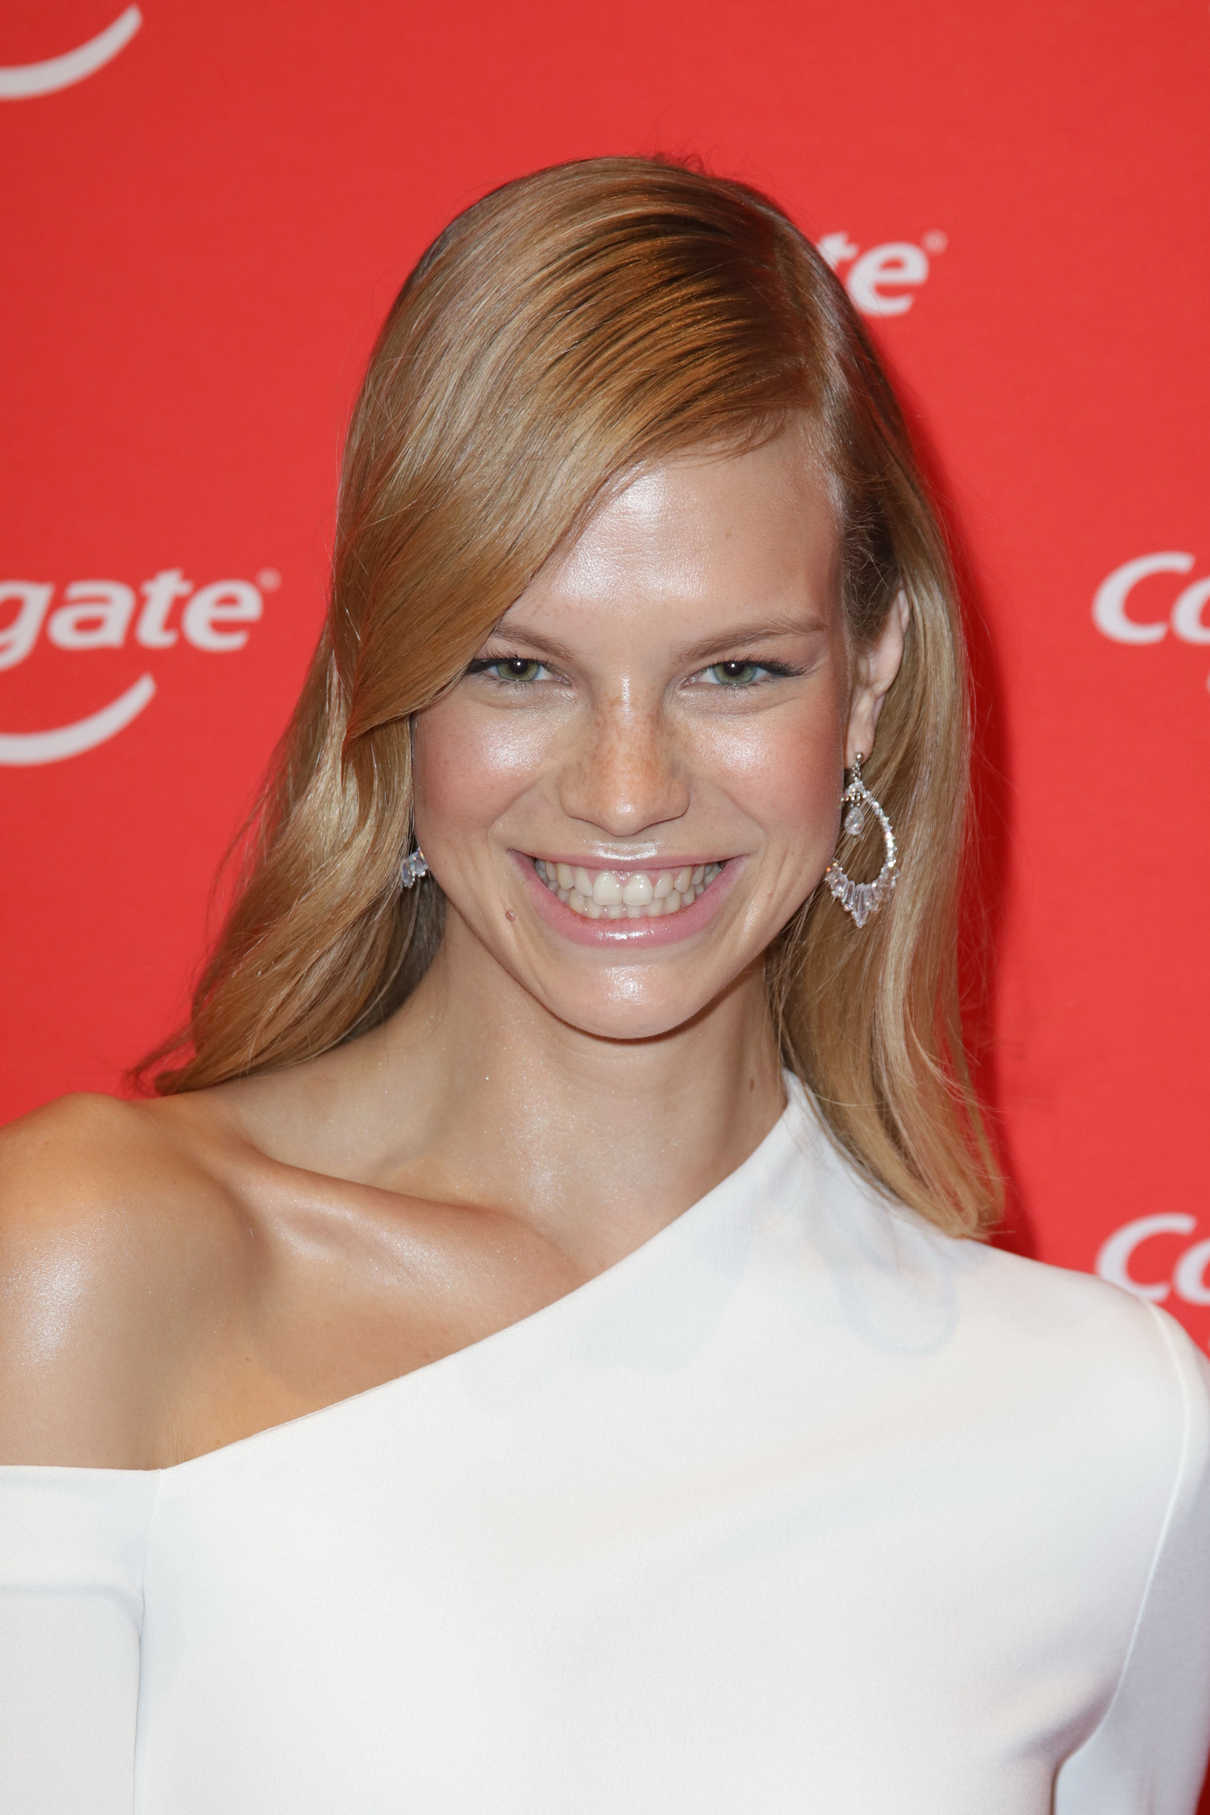 Nadine Leopold During the Colgate White Night at Apartimentum in Hamburg 03/08/2018-7